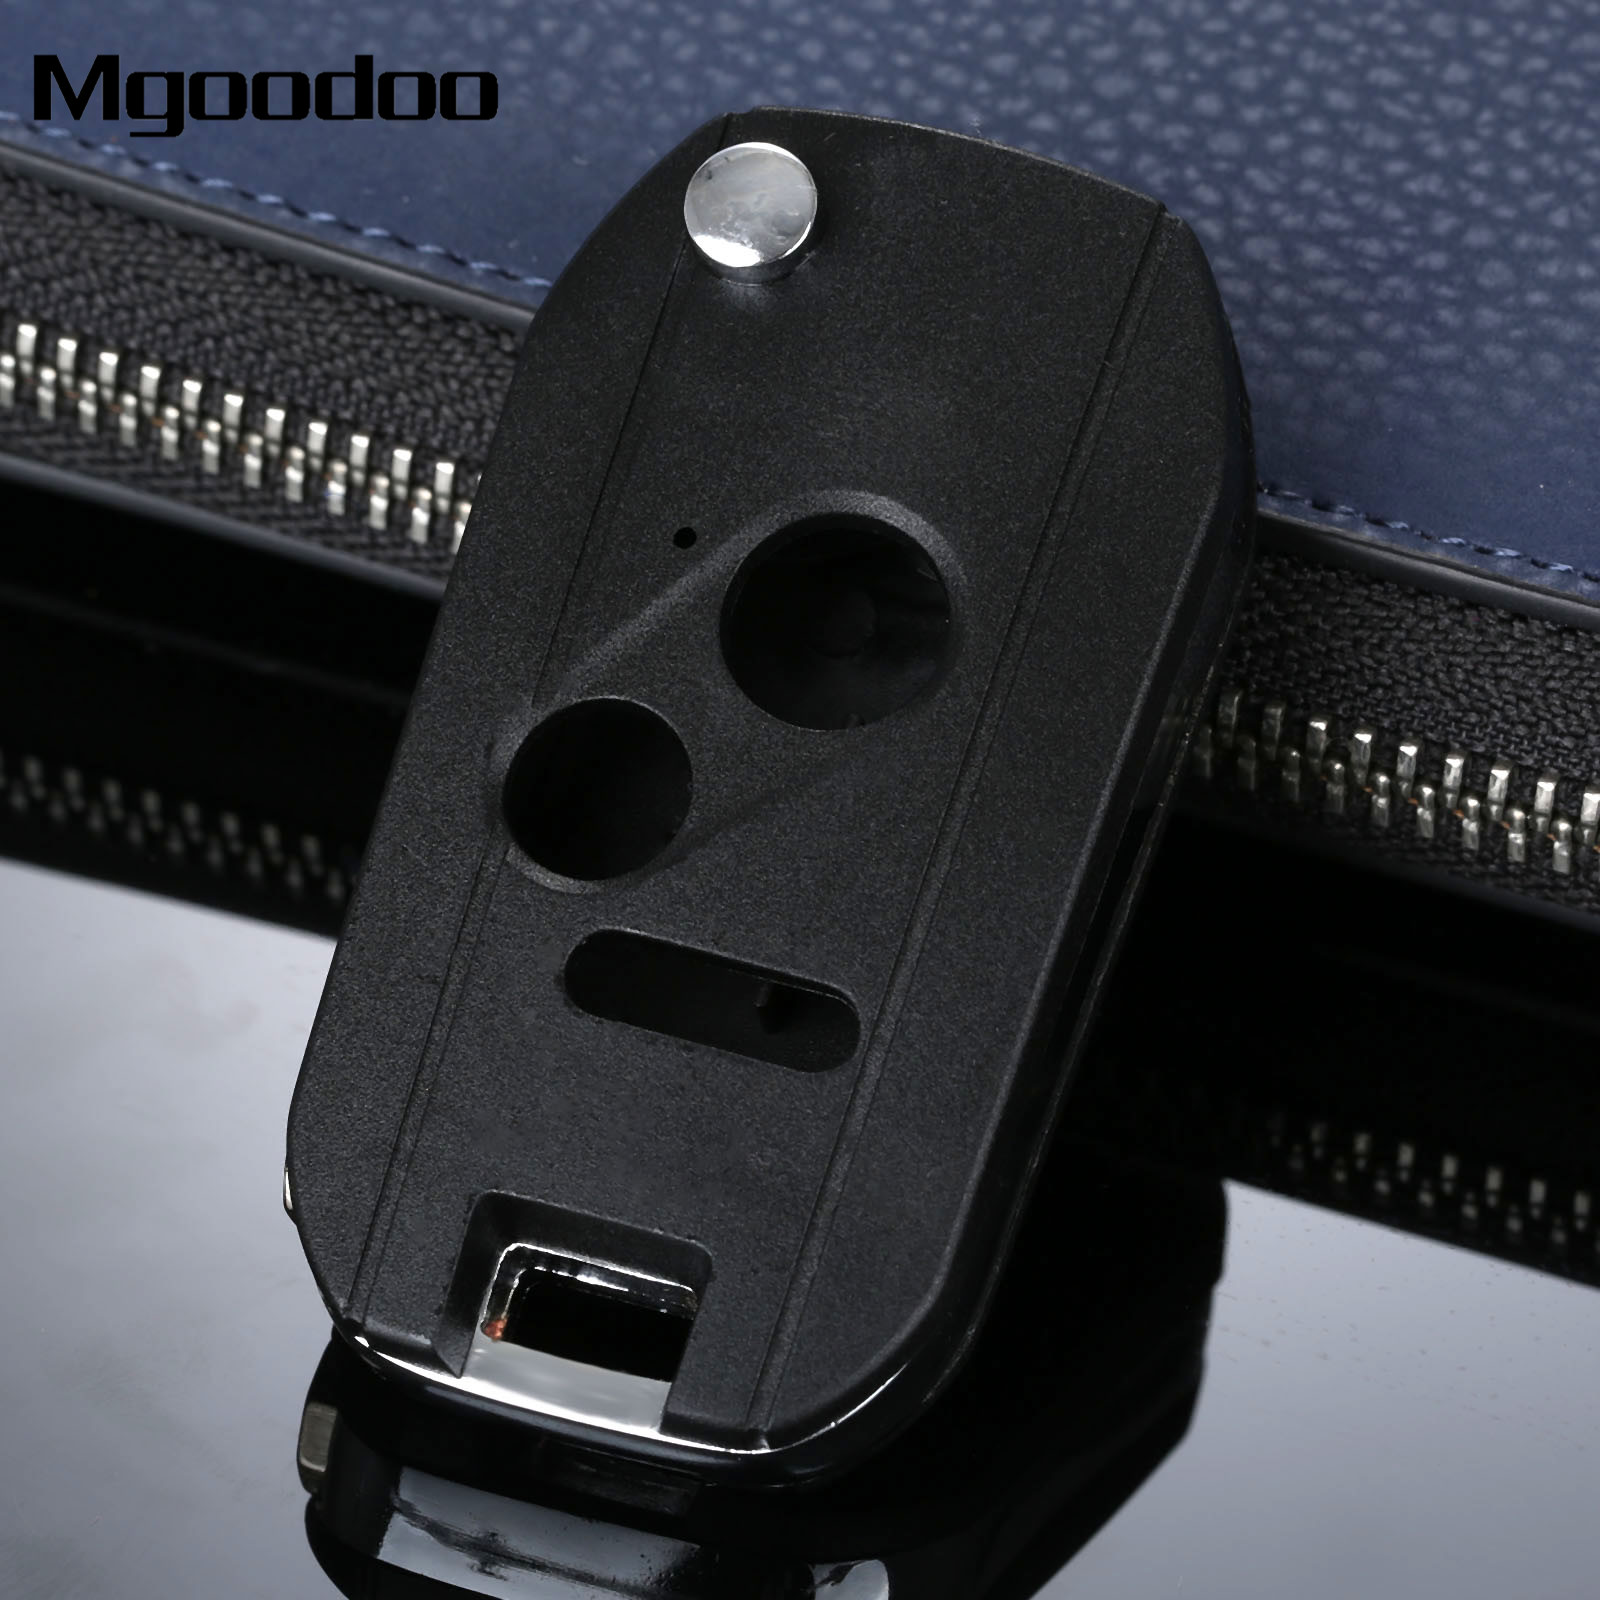 Mgoodoo 2 1 button replacement flip folding remote key shell case fob for honda odyssey lx ridgeline civic accord cr v pilot fit